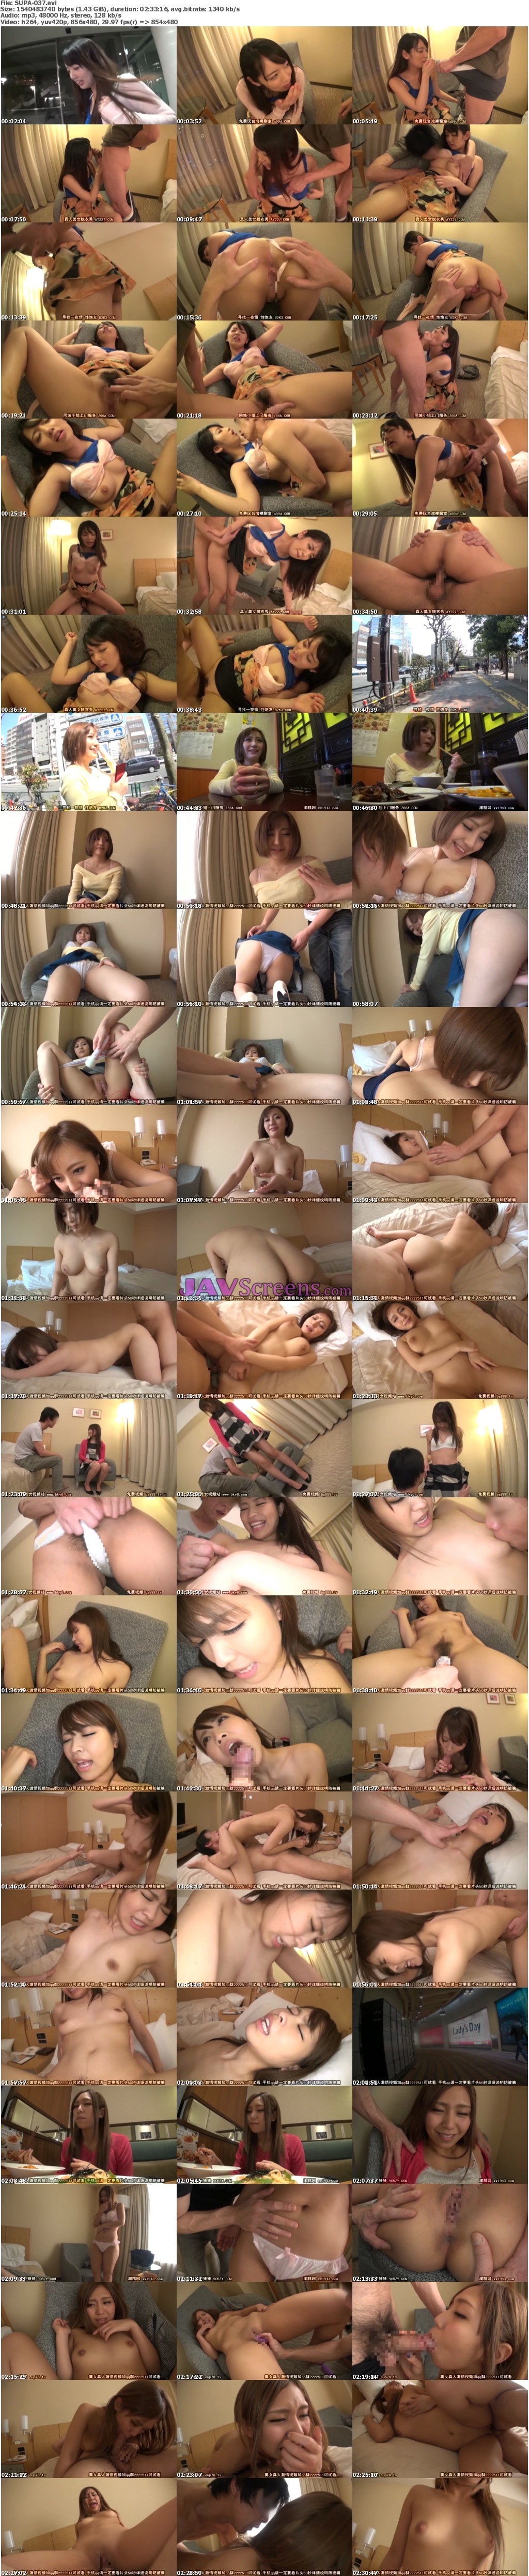 SUPA-037.jpg - JAV Screenshot